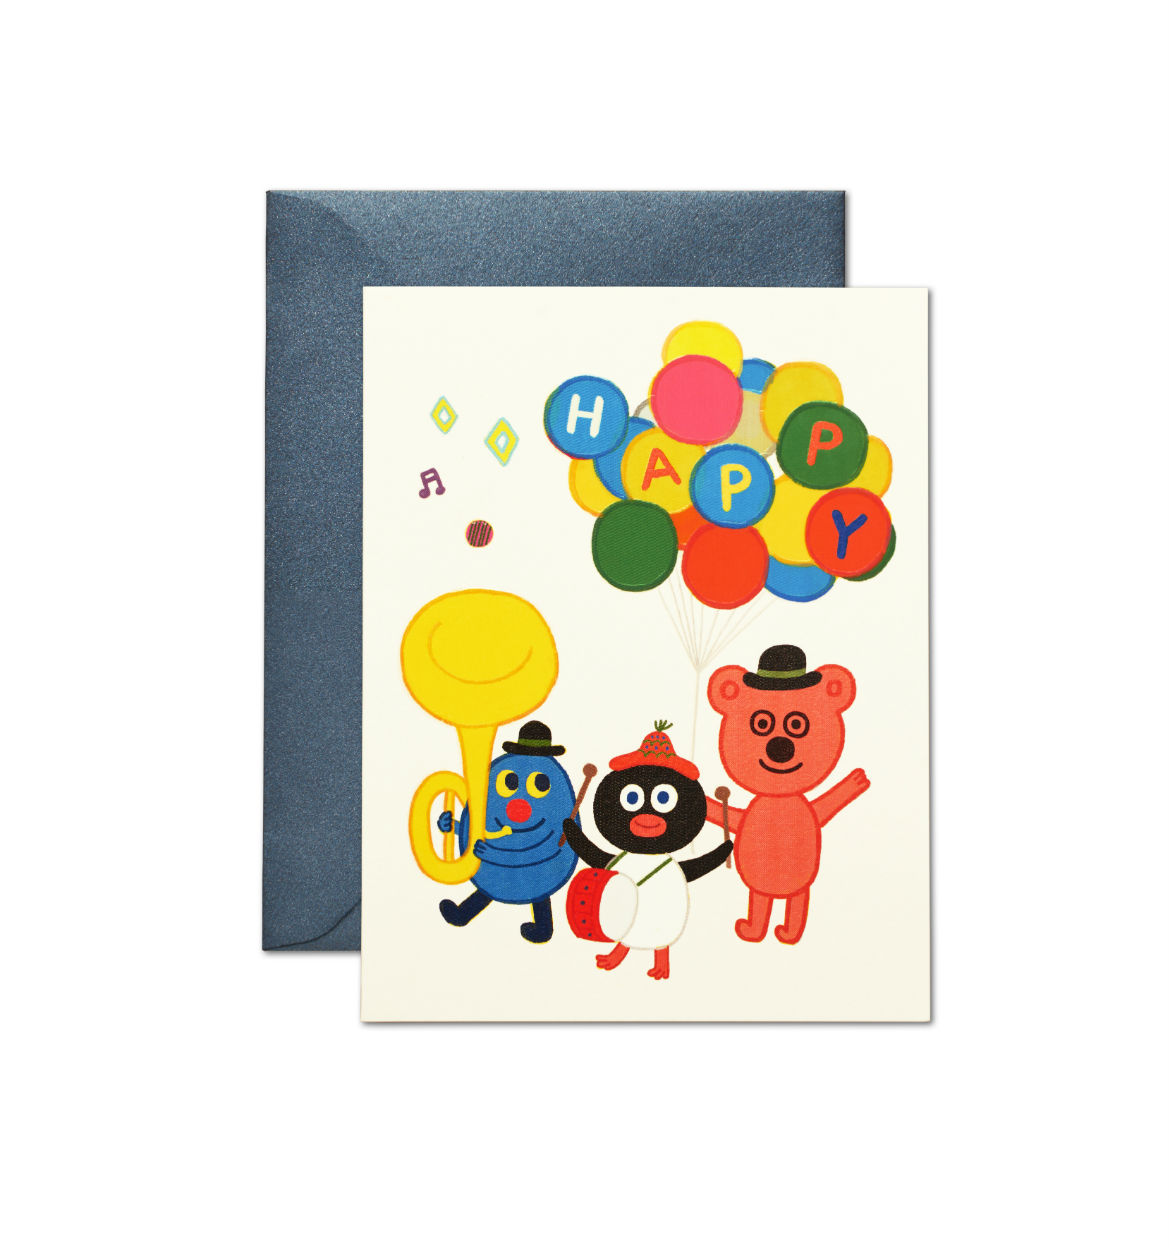 MUSICAL BIRTHDAY GREETING CARD